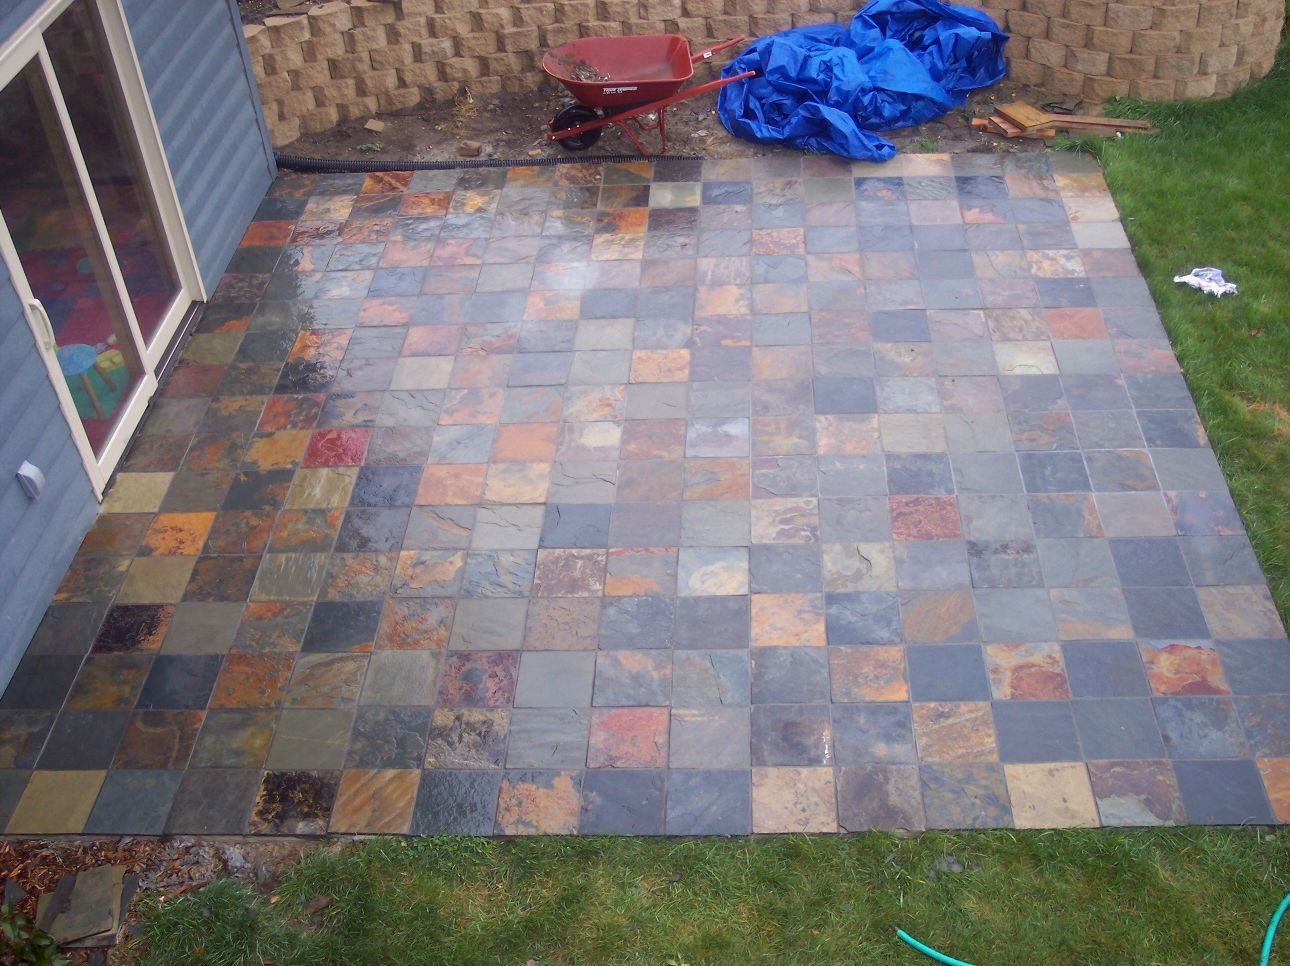 Genial Does Mother Earth Love My Slate Tile Patio?